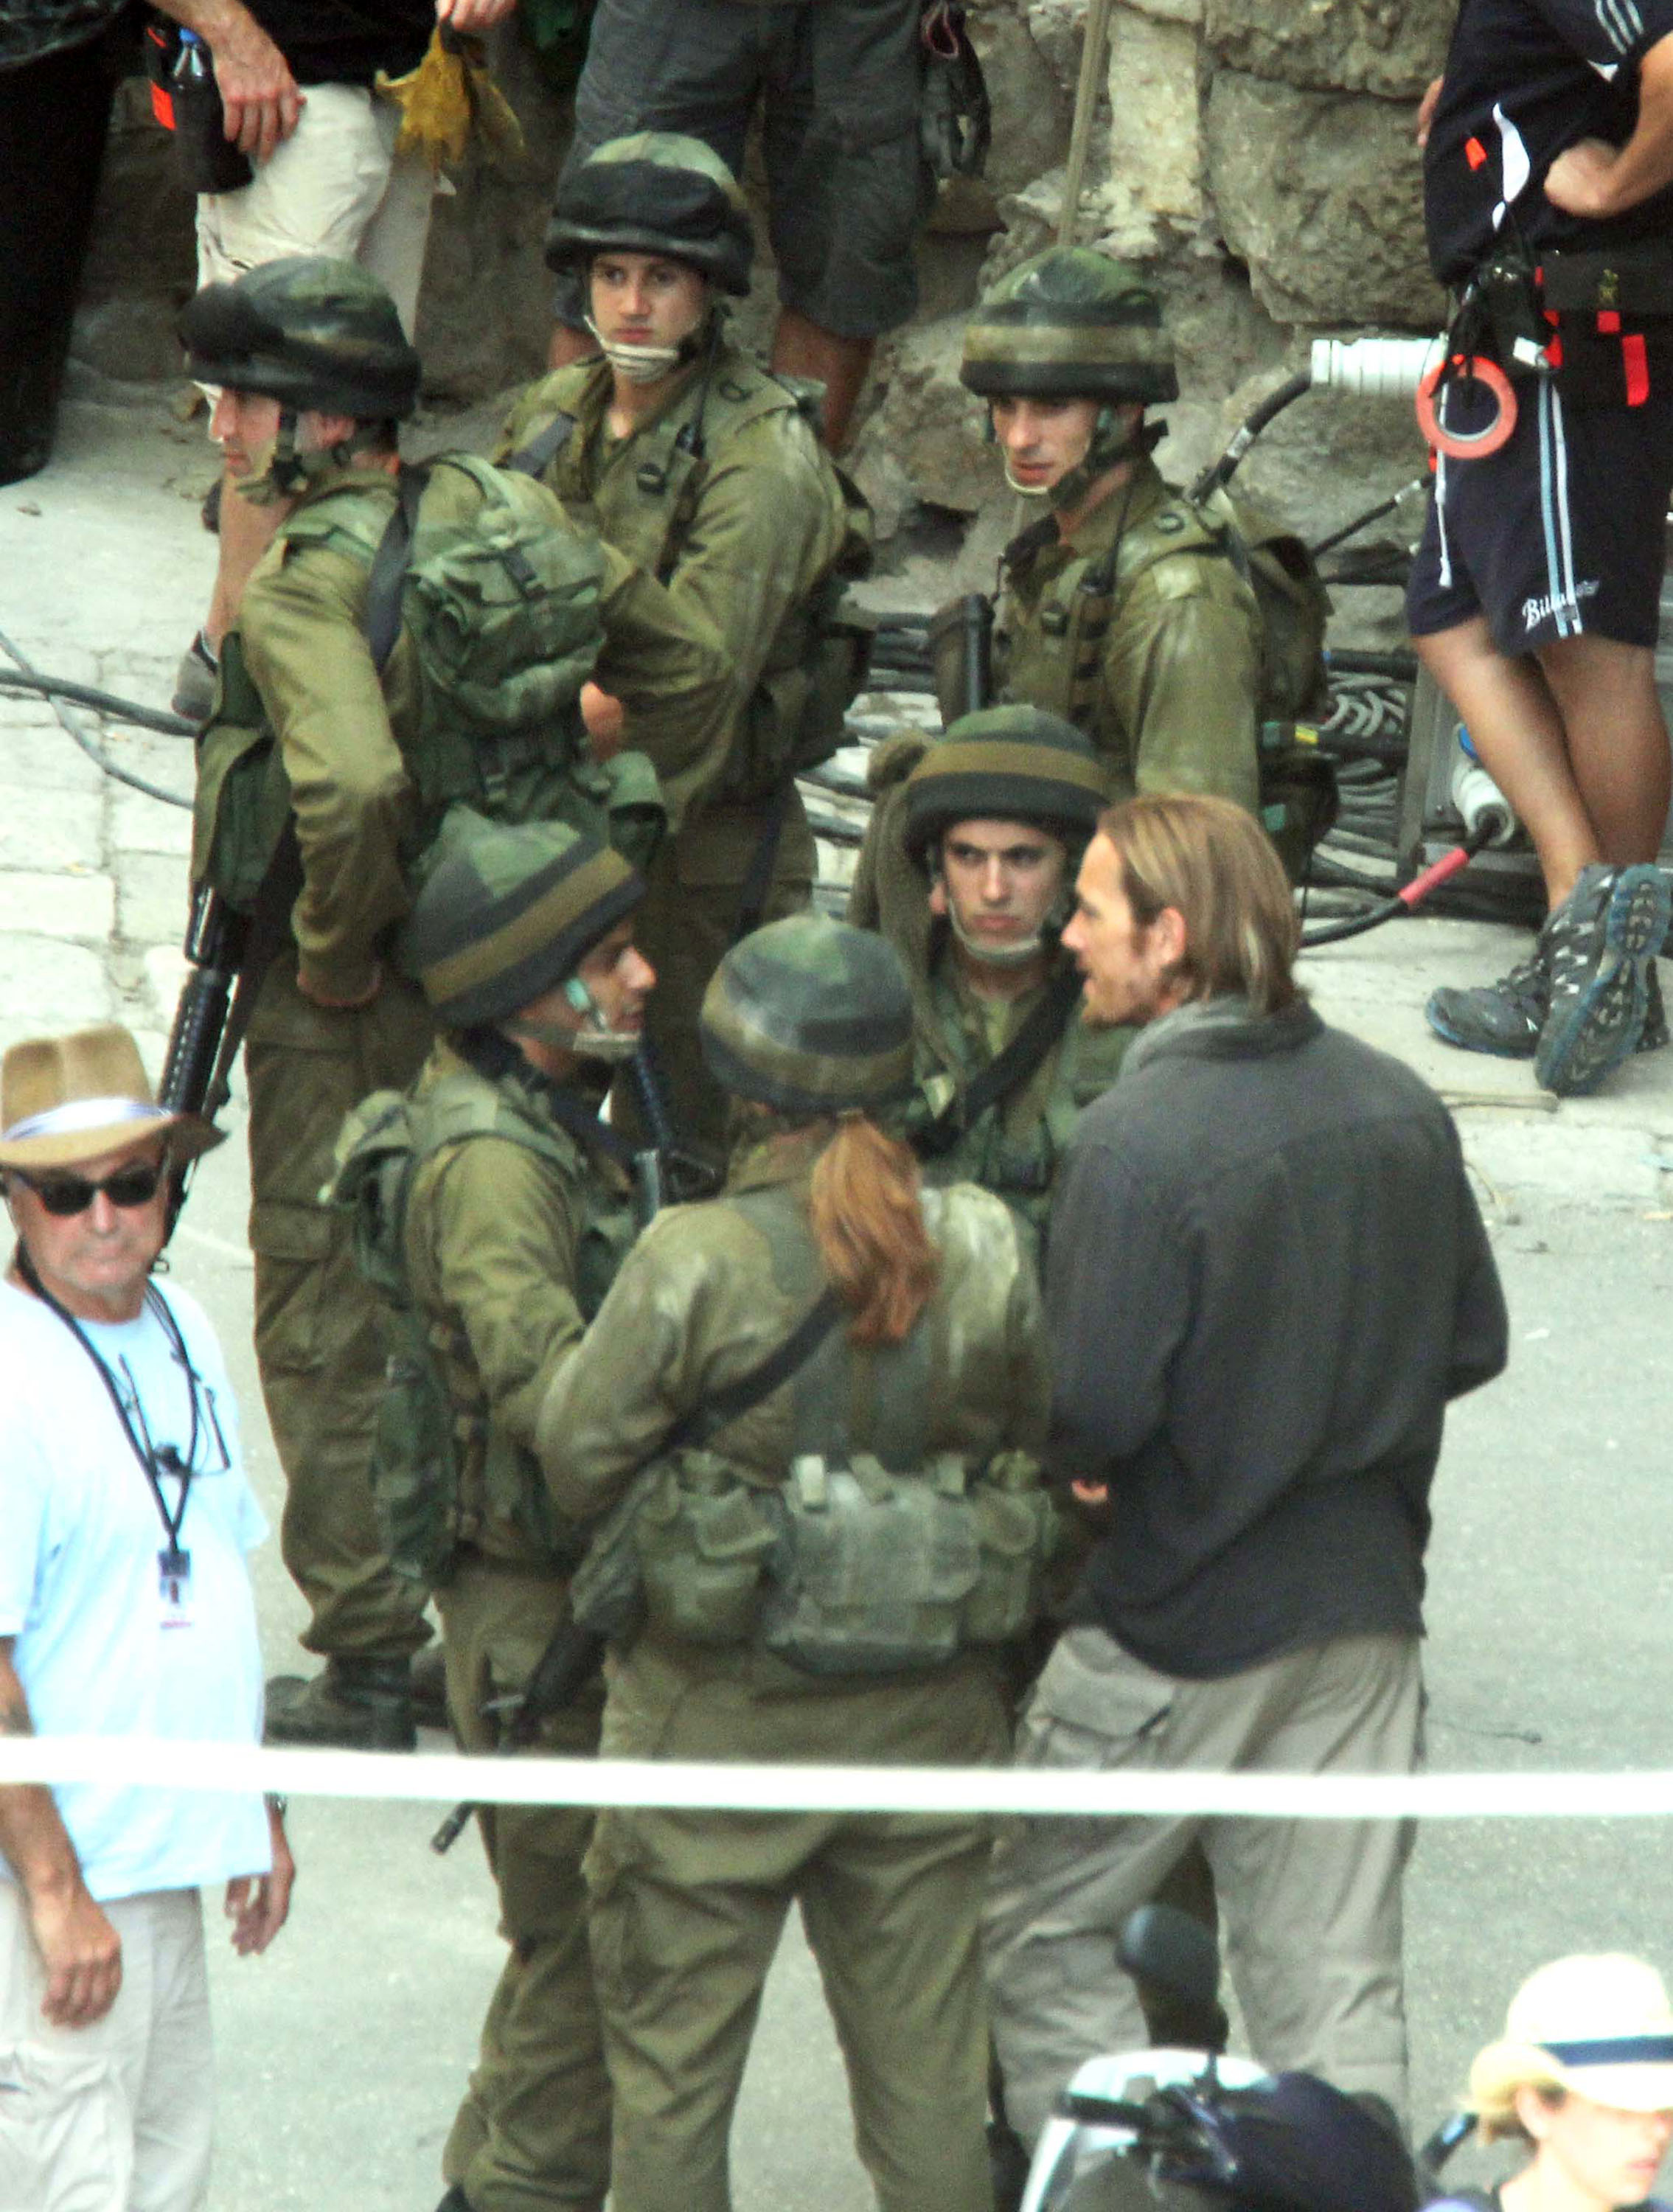 Brad Pitt fought an army of zombies on the set of World War Z.